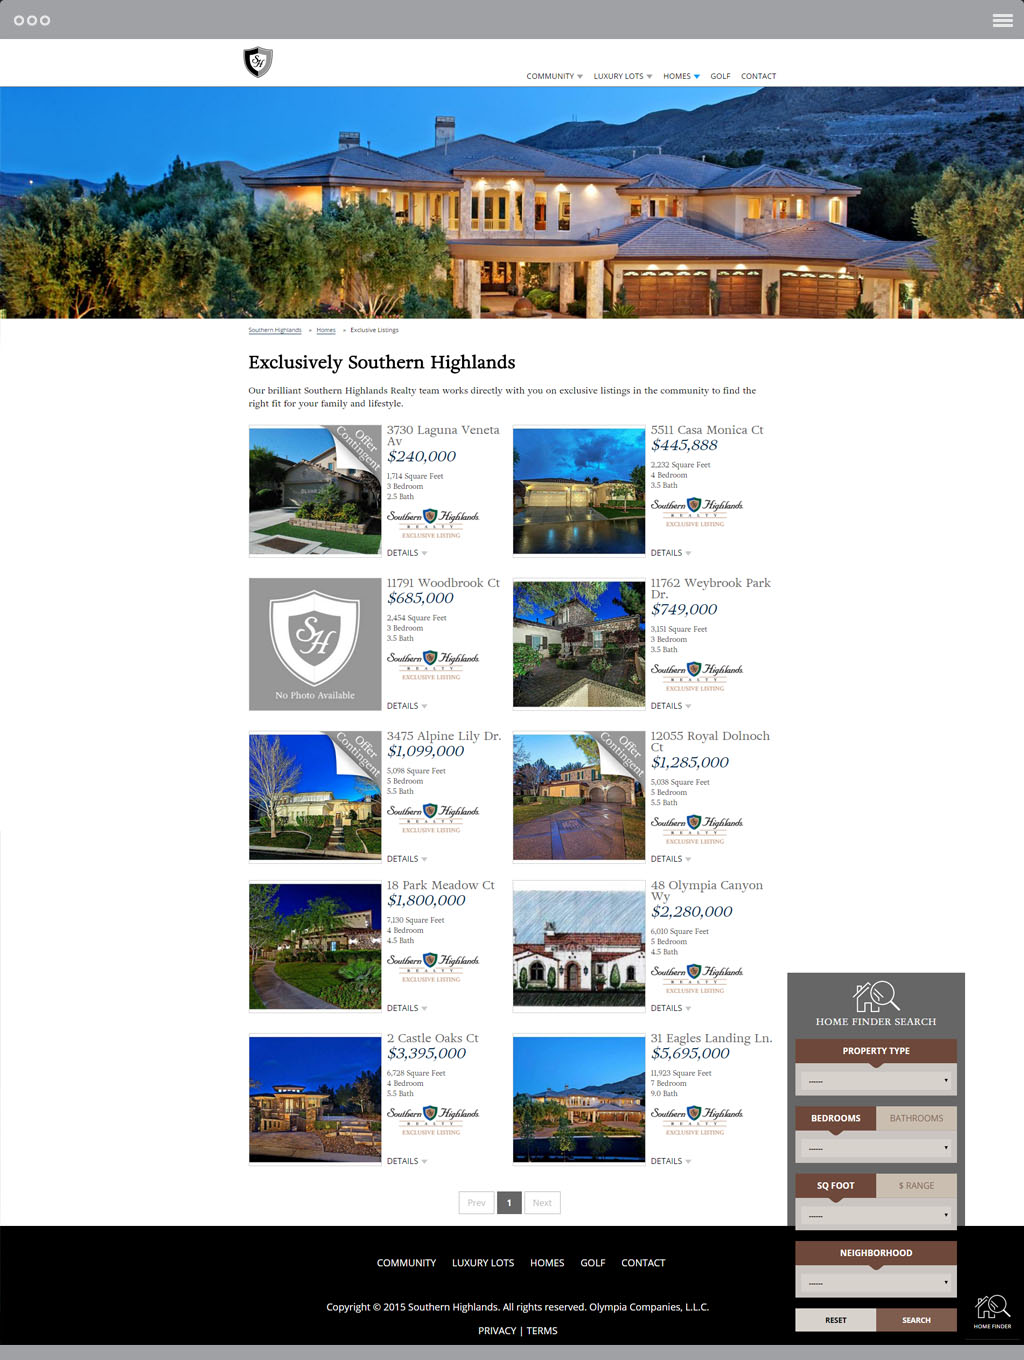 Southern Highlands Listings Page